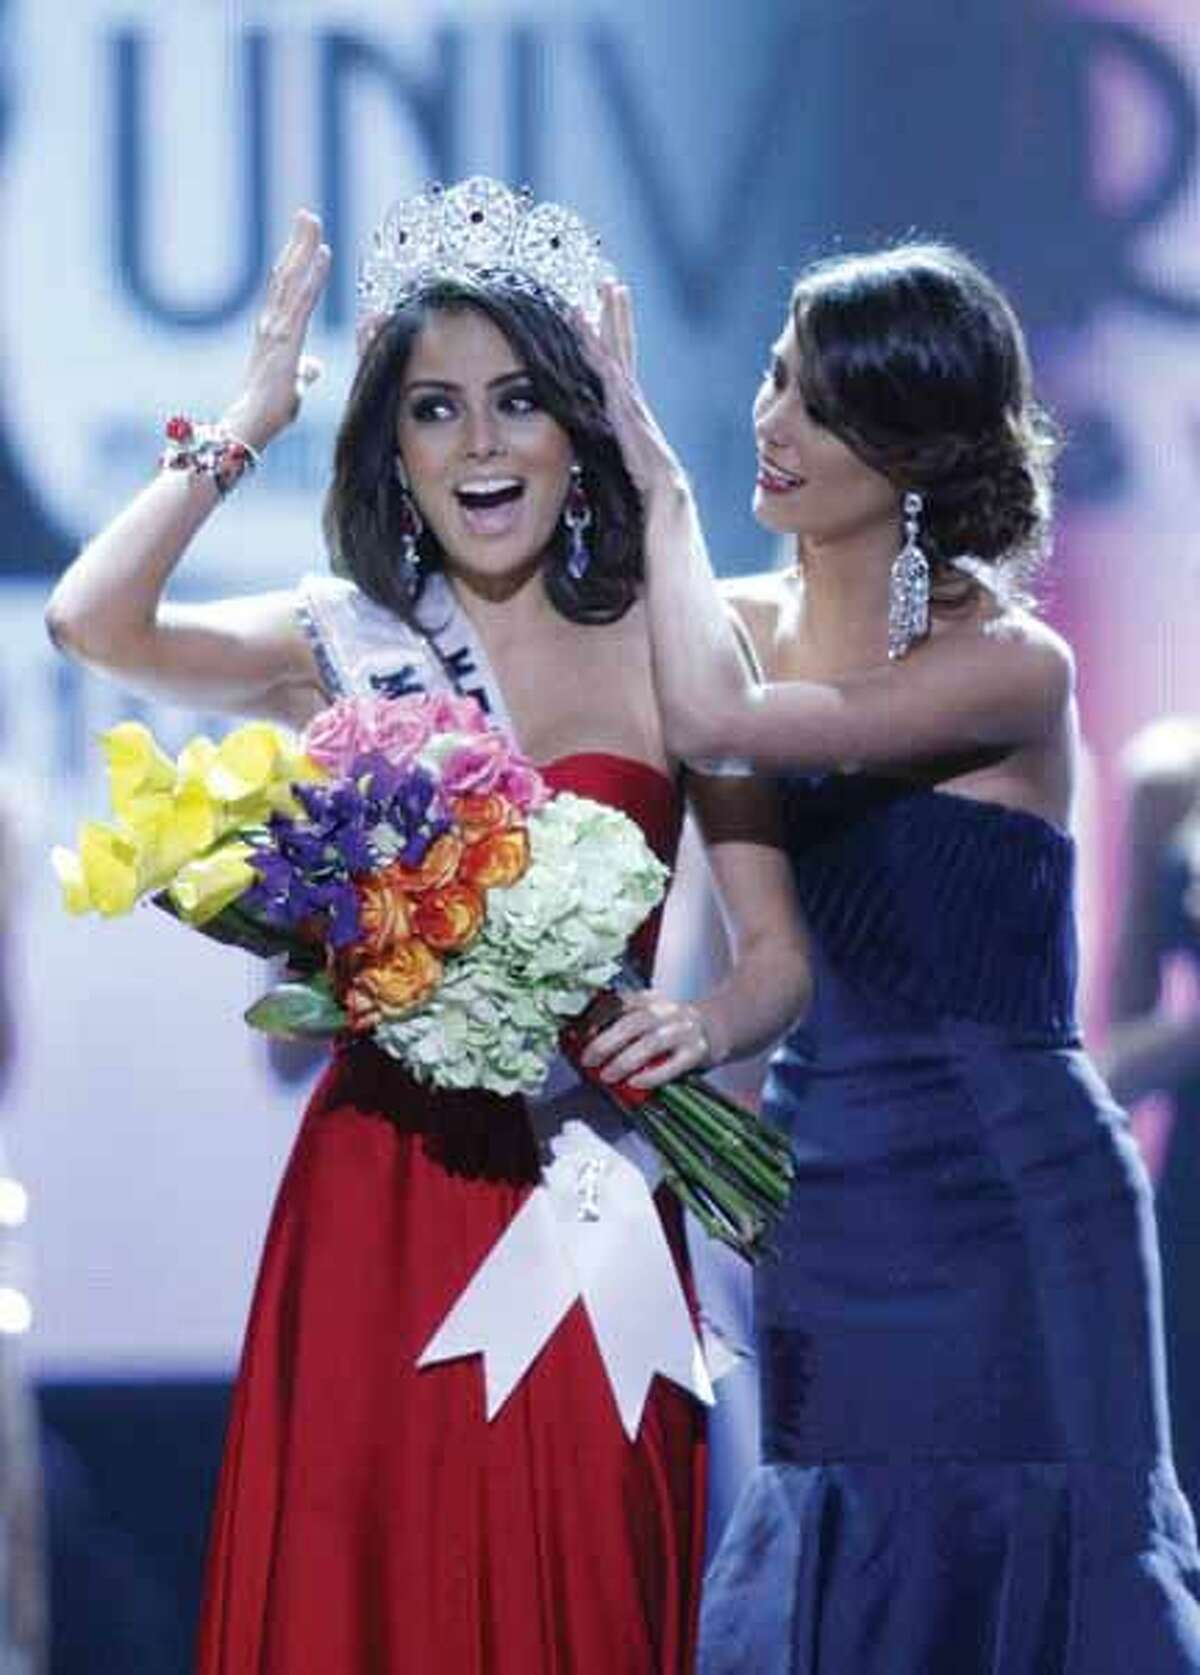 Miss Mexico Jimena Navarrete is crowned Miss Universe 2010 by Stefania Fernandez during the Miss Universe pageant, Monday, Aug. 23, 2010 in Las Vegas. (AP Photo/Isaac Brekken)